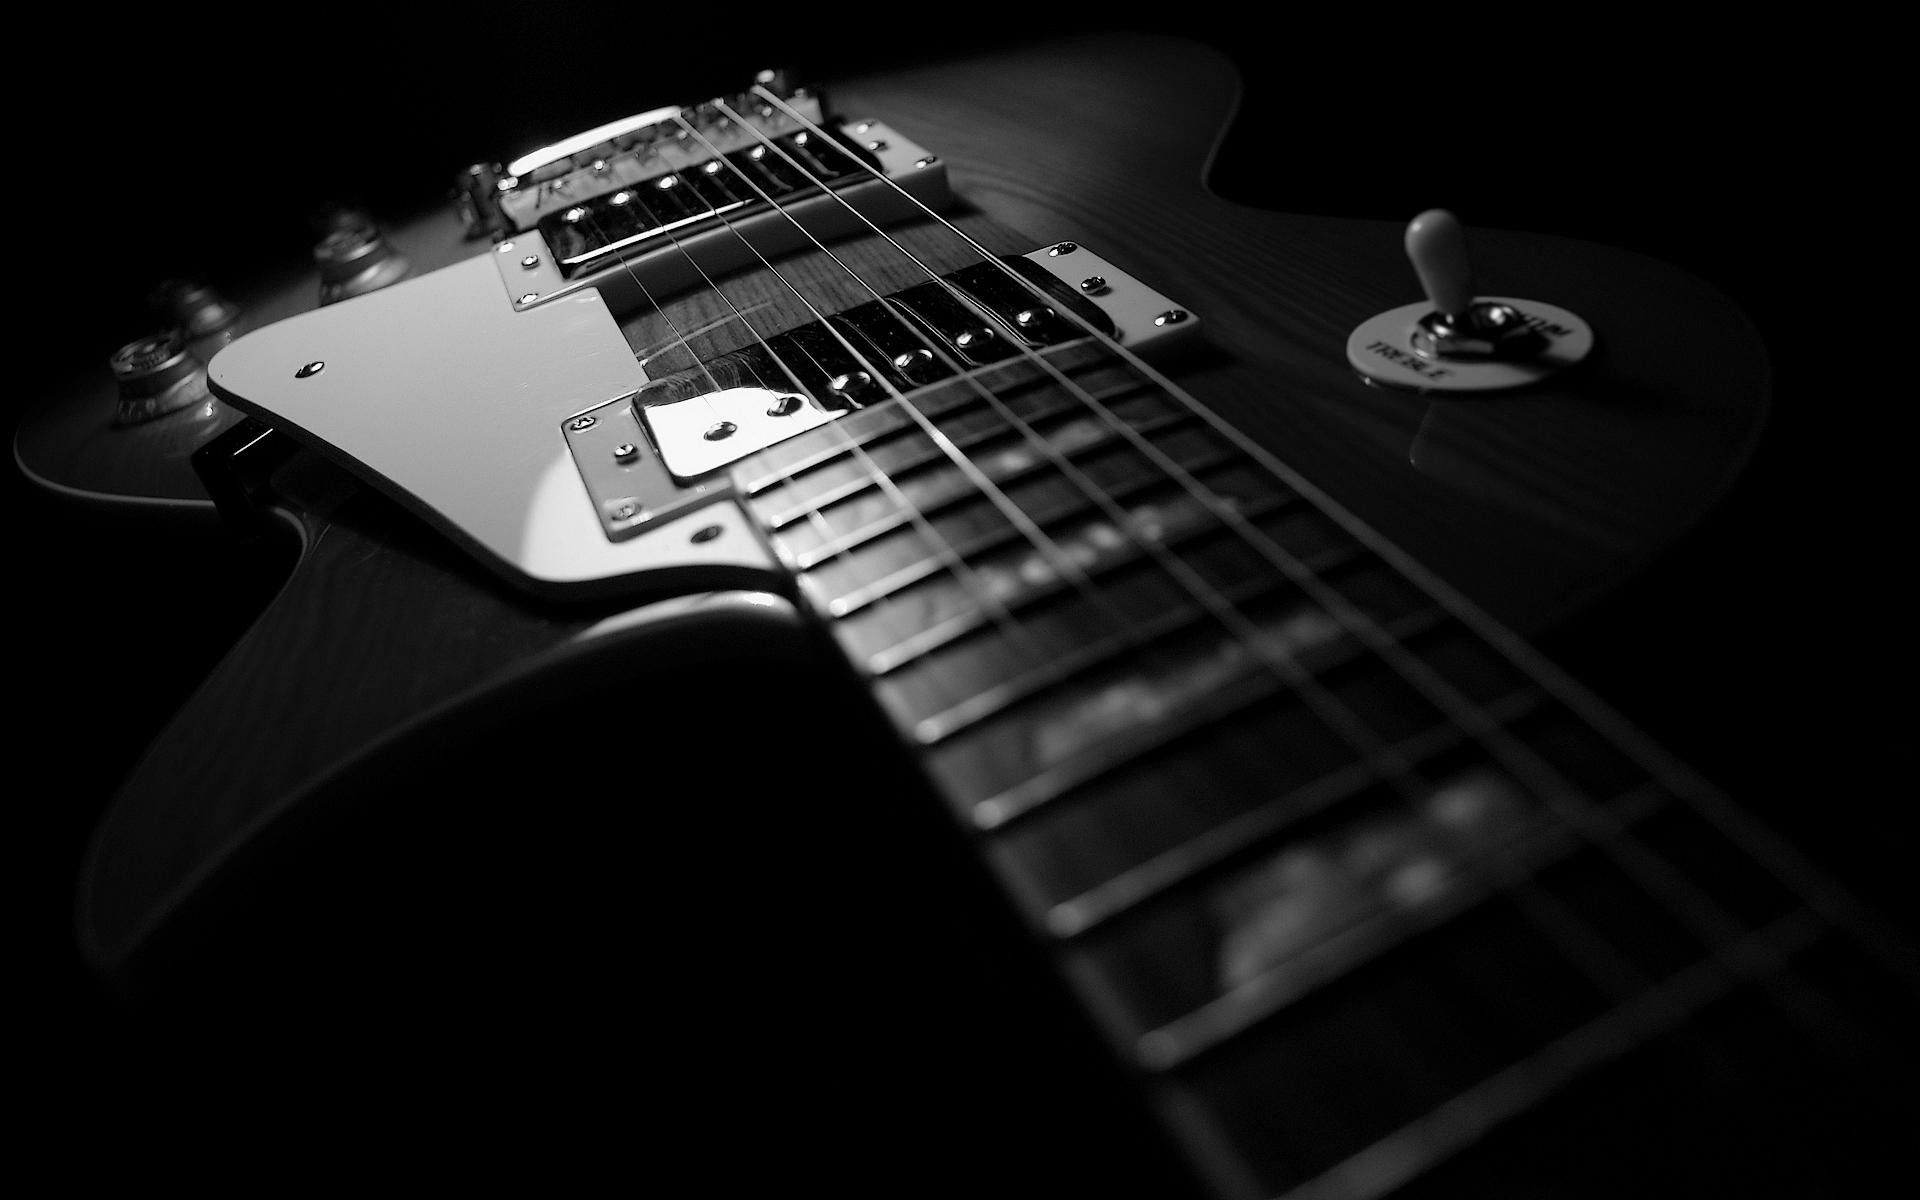 10 most popular electric guitar wallpaper hd full hd 1080p for pc 10 most popular electric guitar wallpaper hd full hd 1080p for pc background 2018 free download voltagebd Choice Image